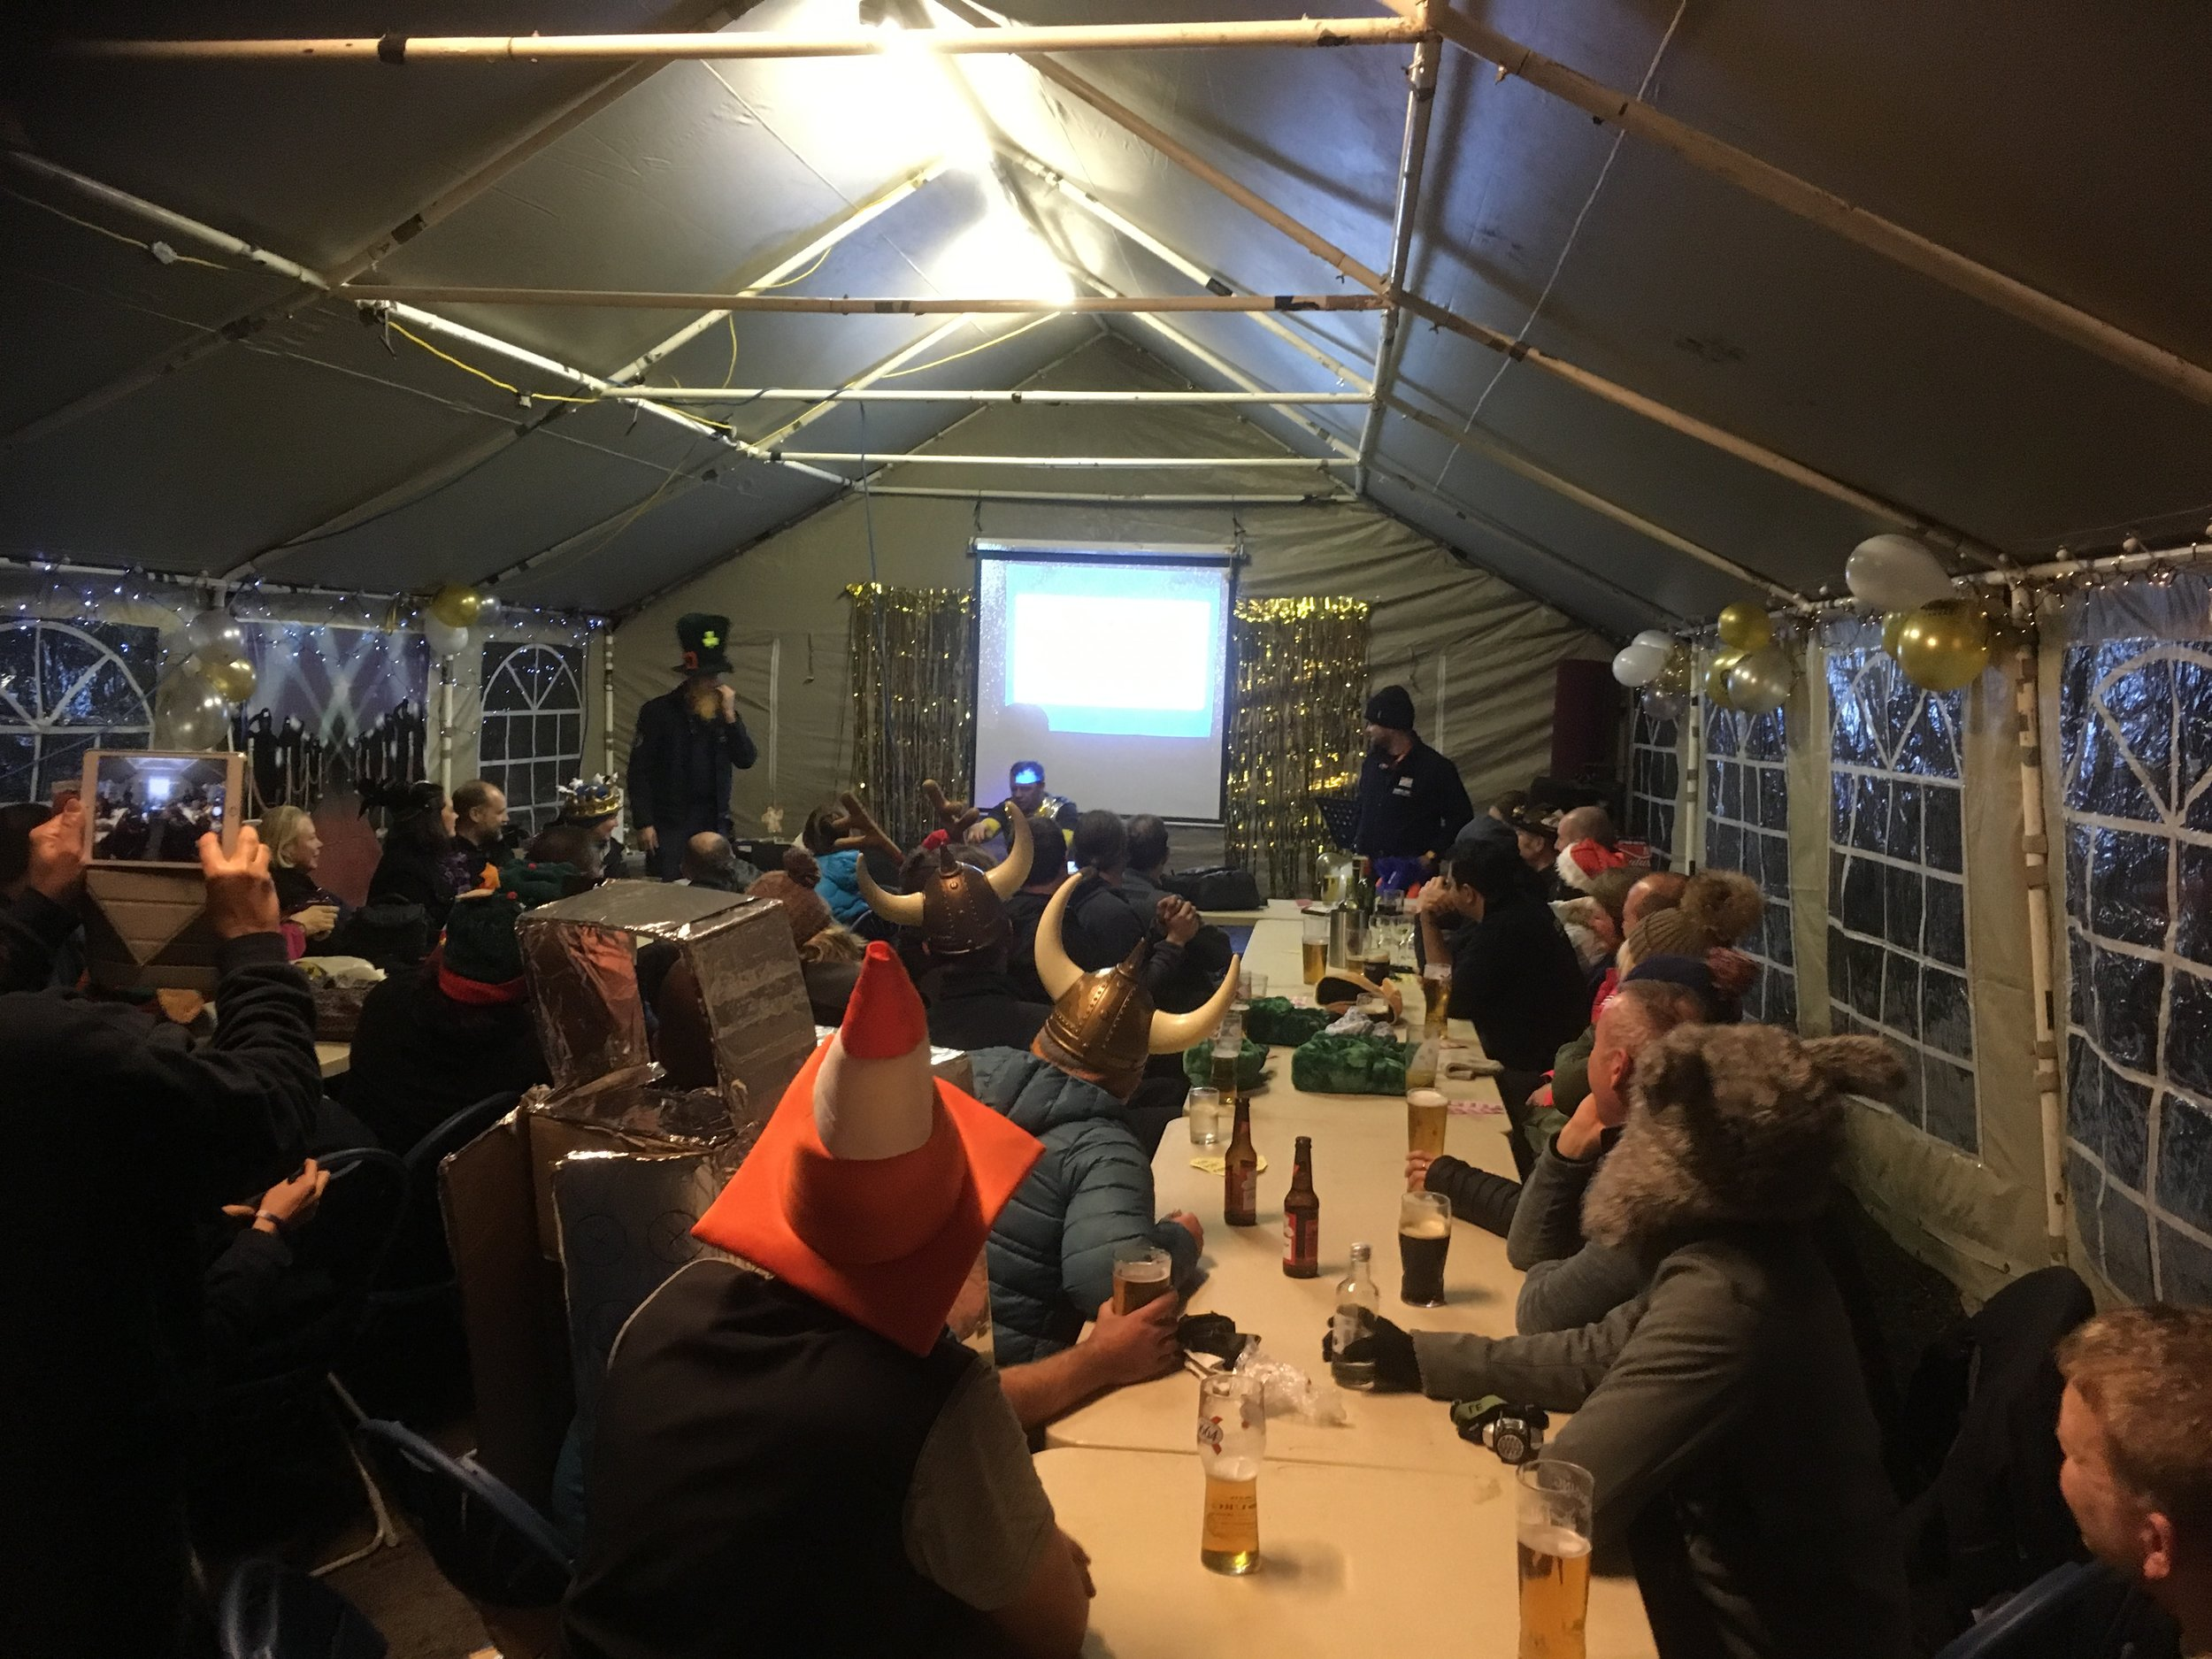 Party time as volunteers let their hair down for the Christmas party and annual awards.